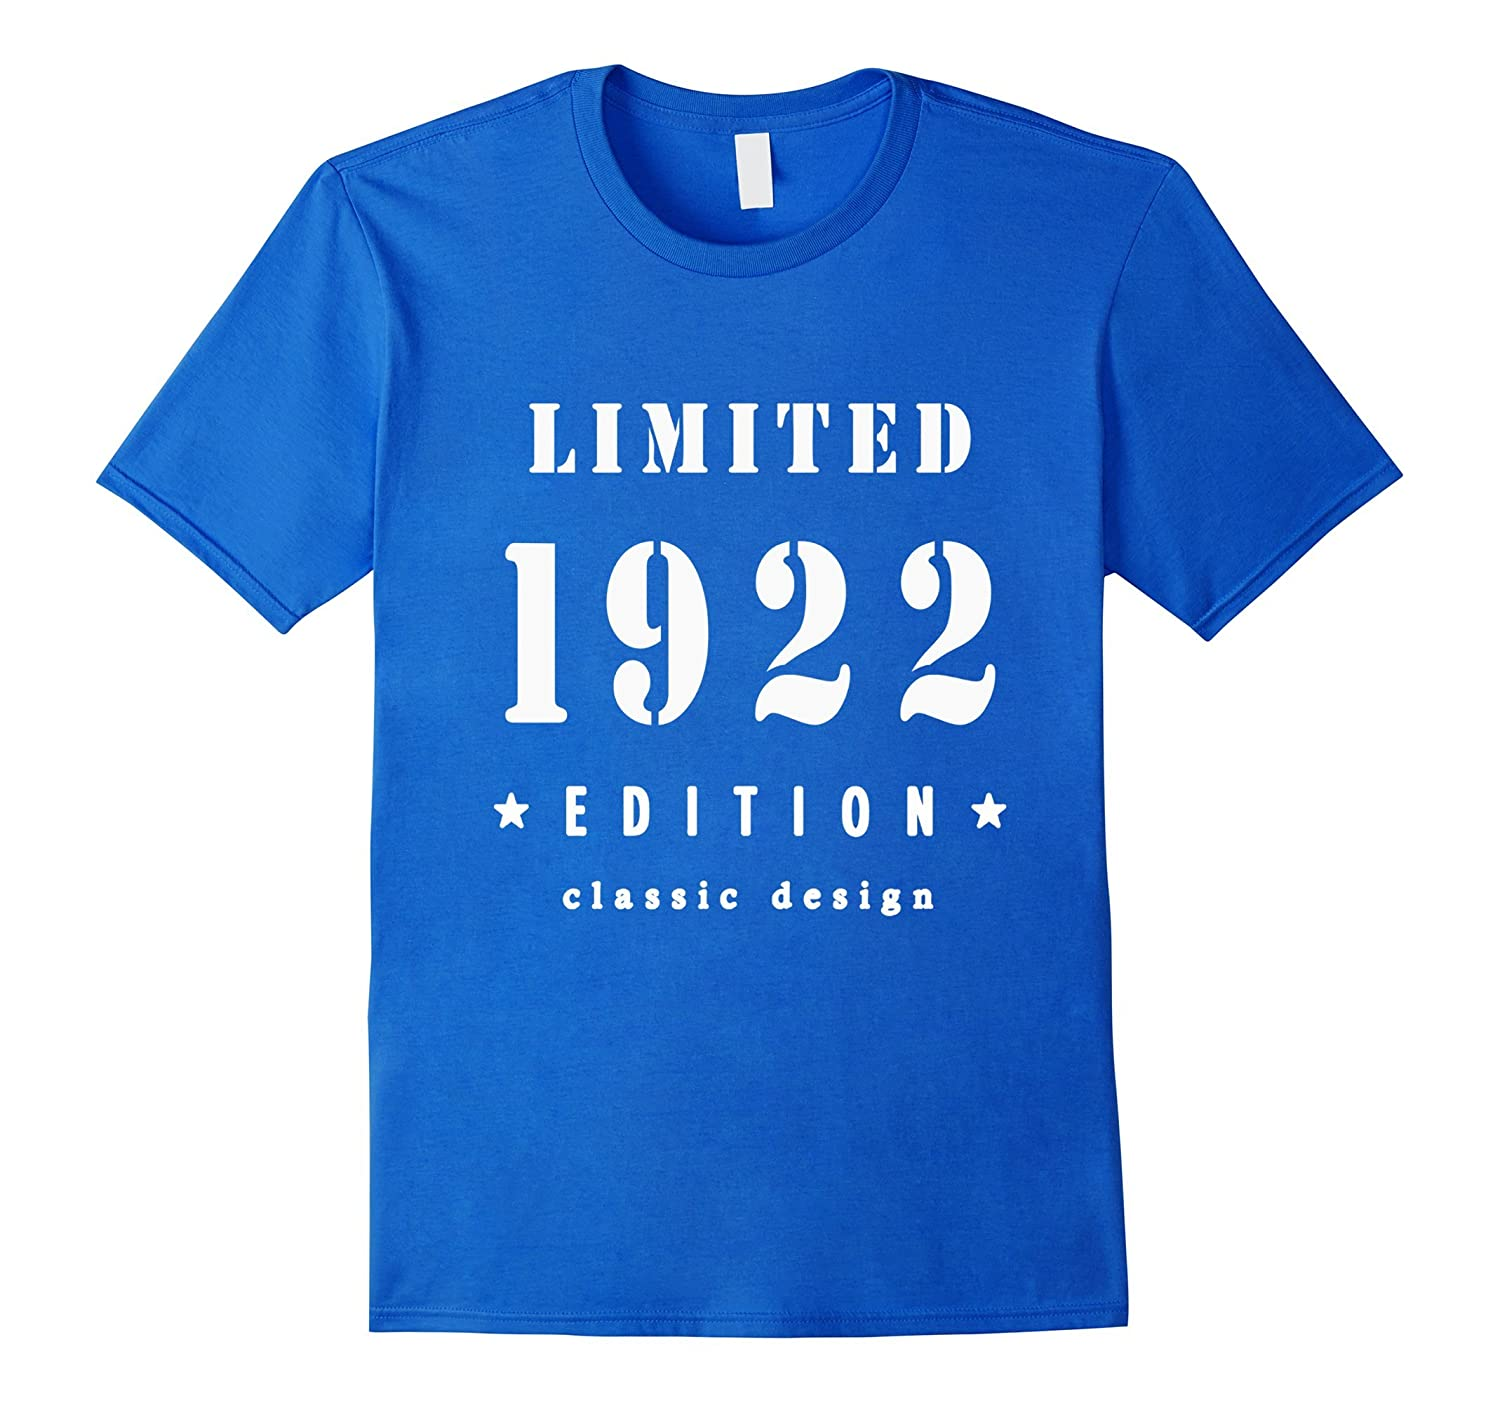 95th Birthday T Shirt Vintage Made In 1922 Gift Ideas Guys TH